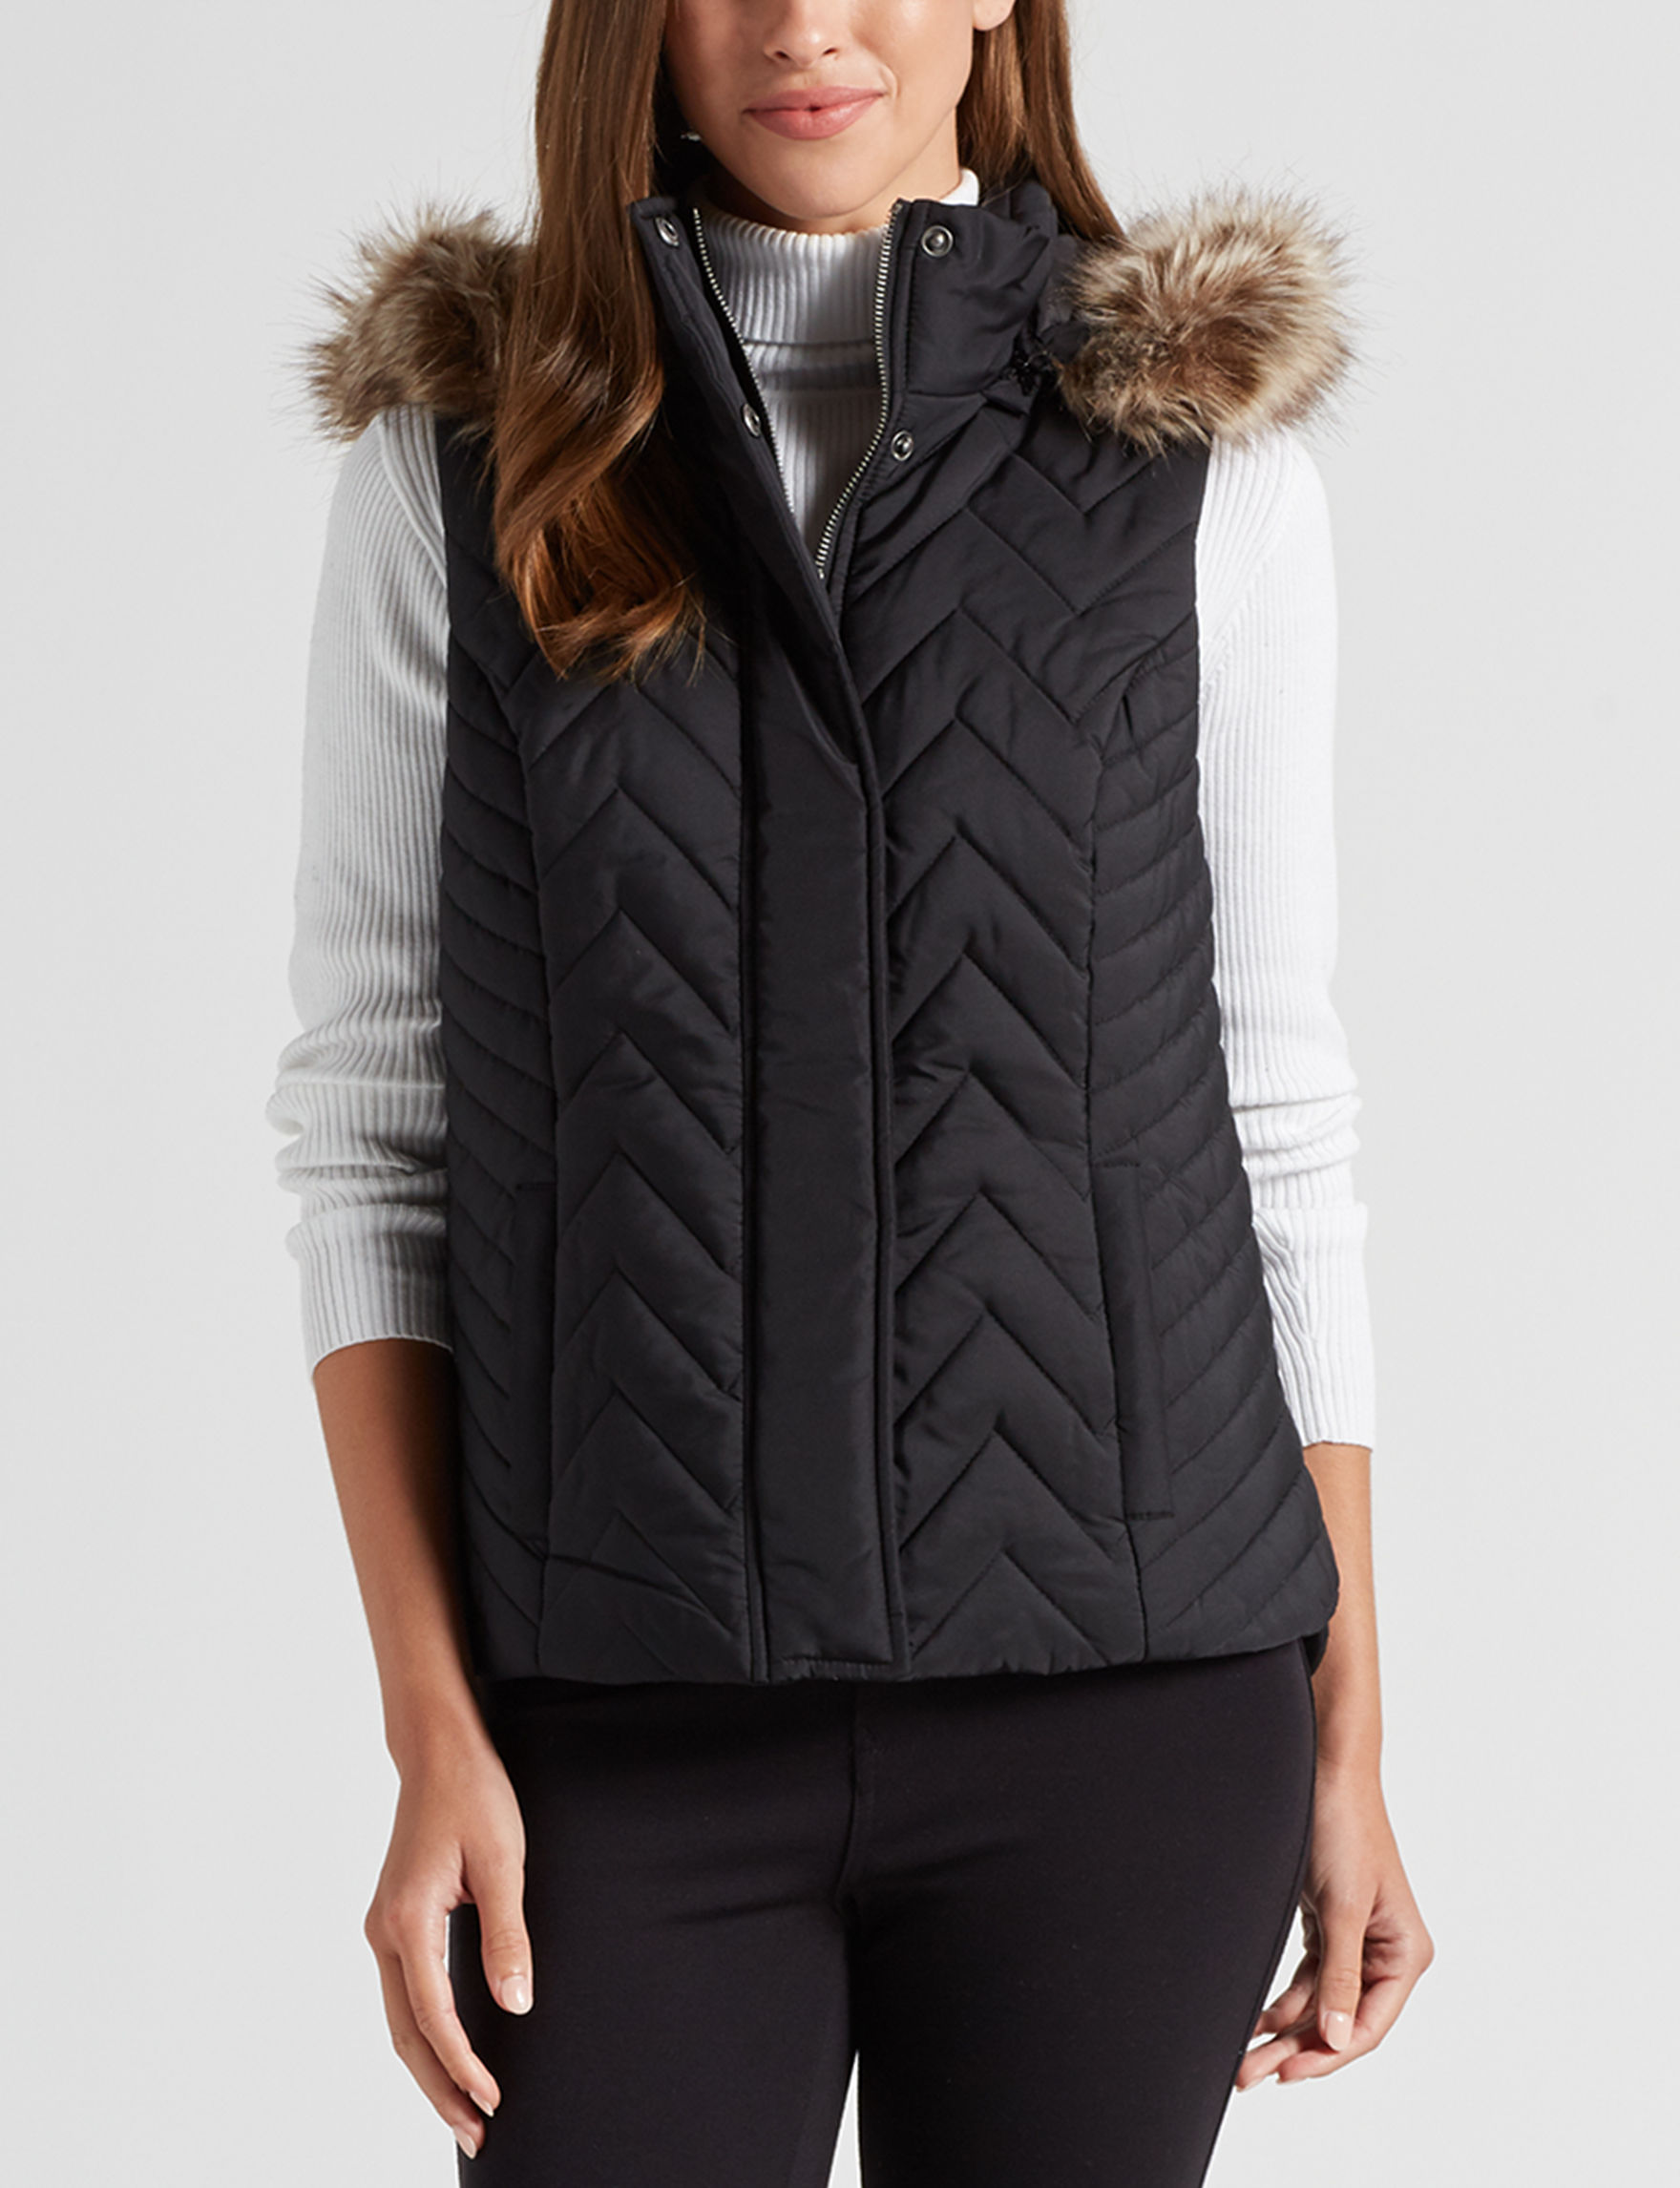 Sebby Collection Black Puffer & Quilted Jackets